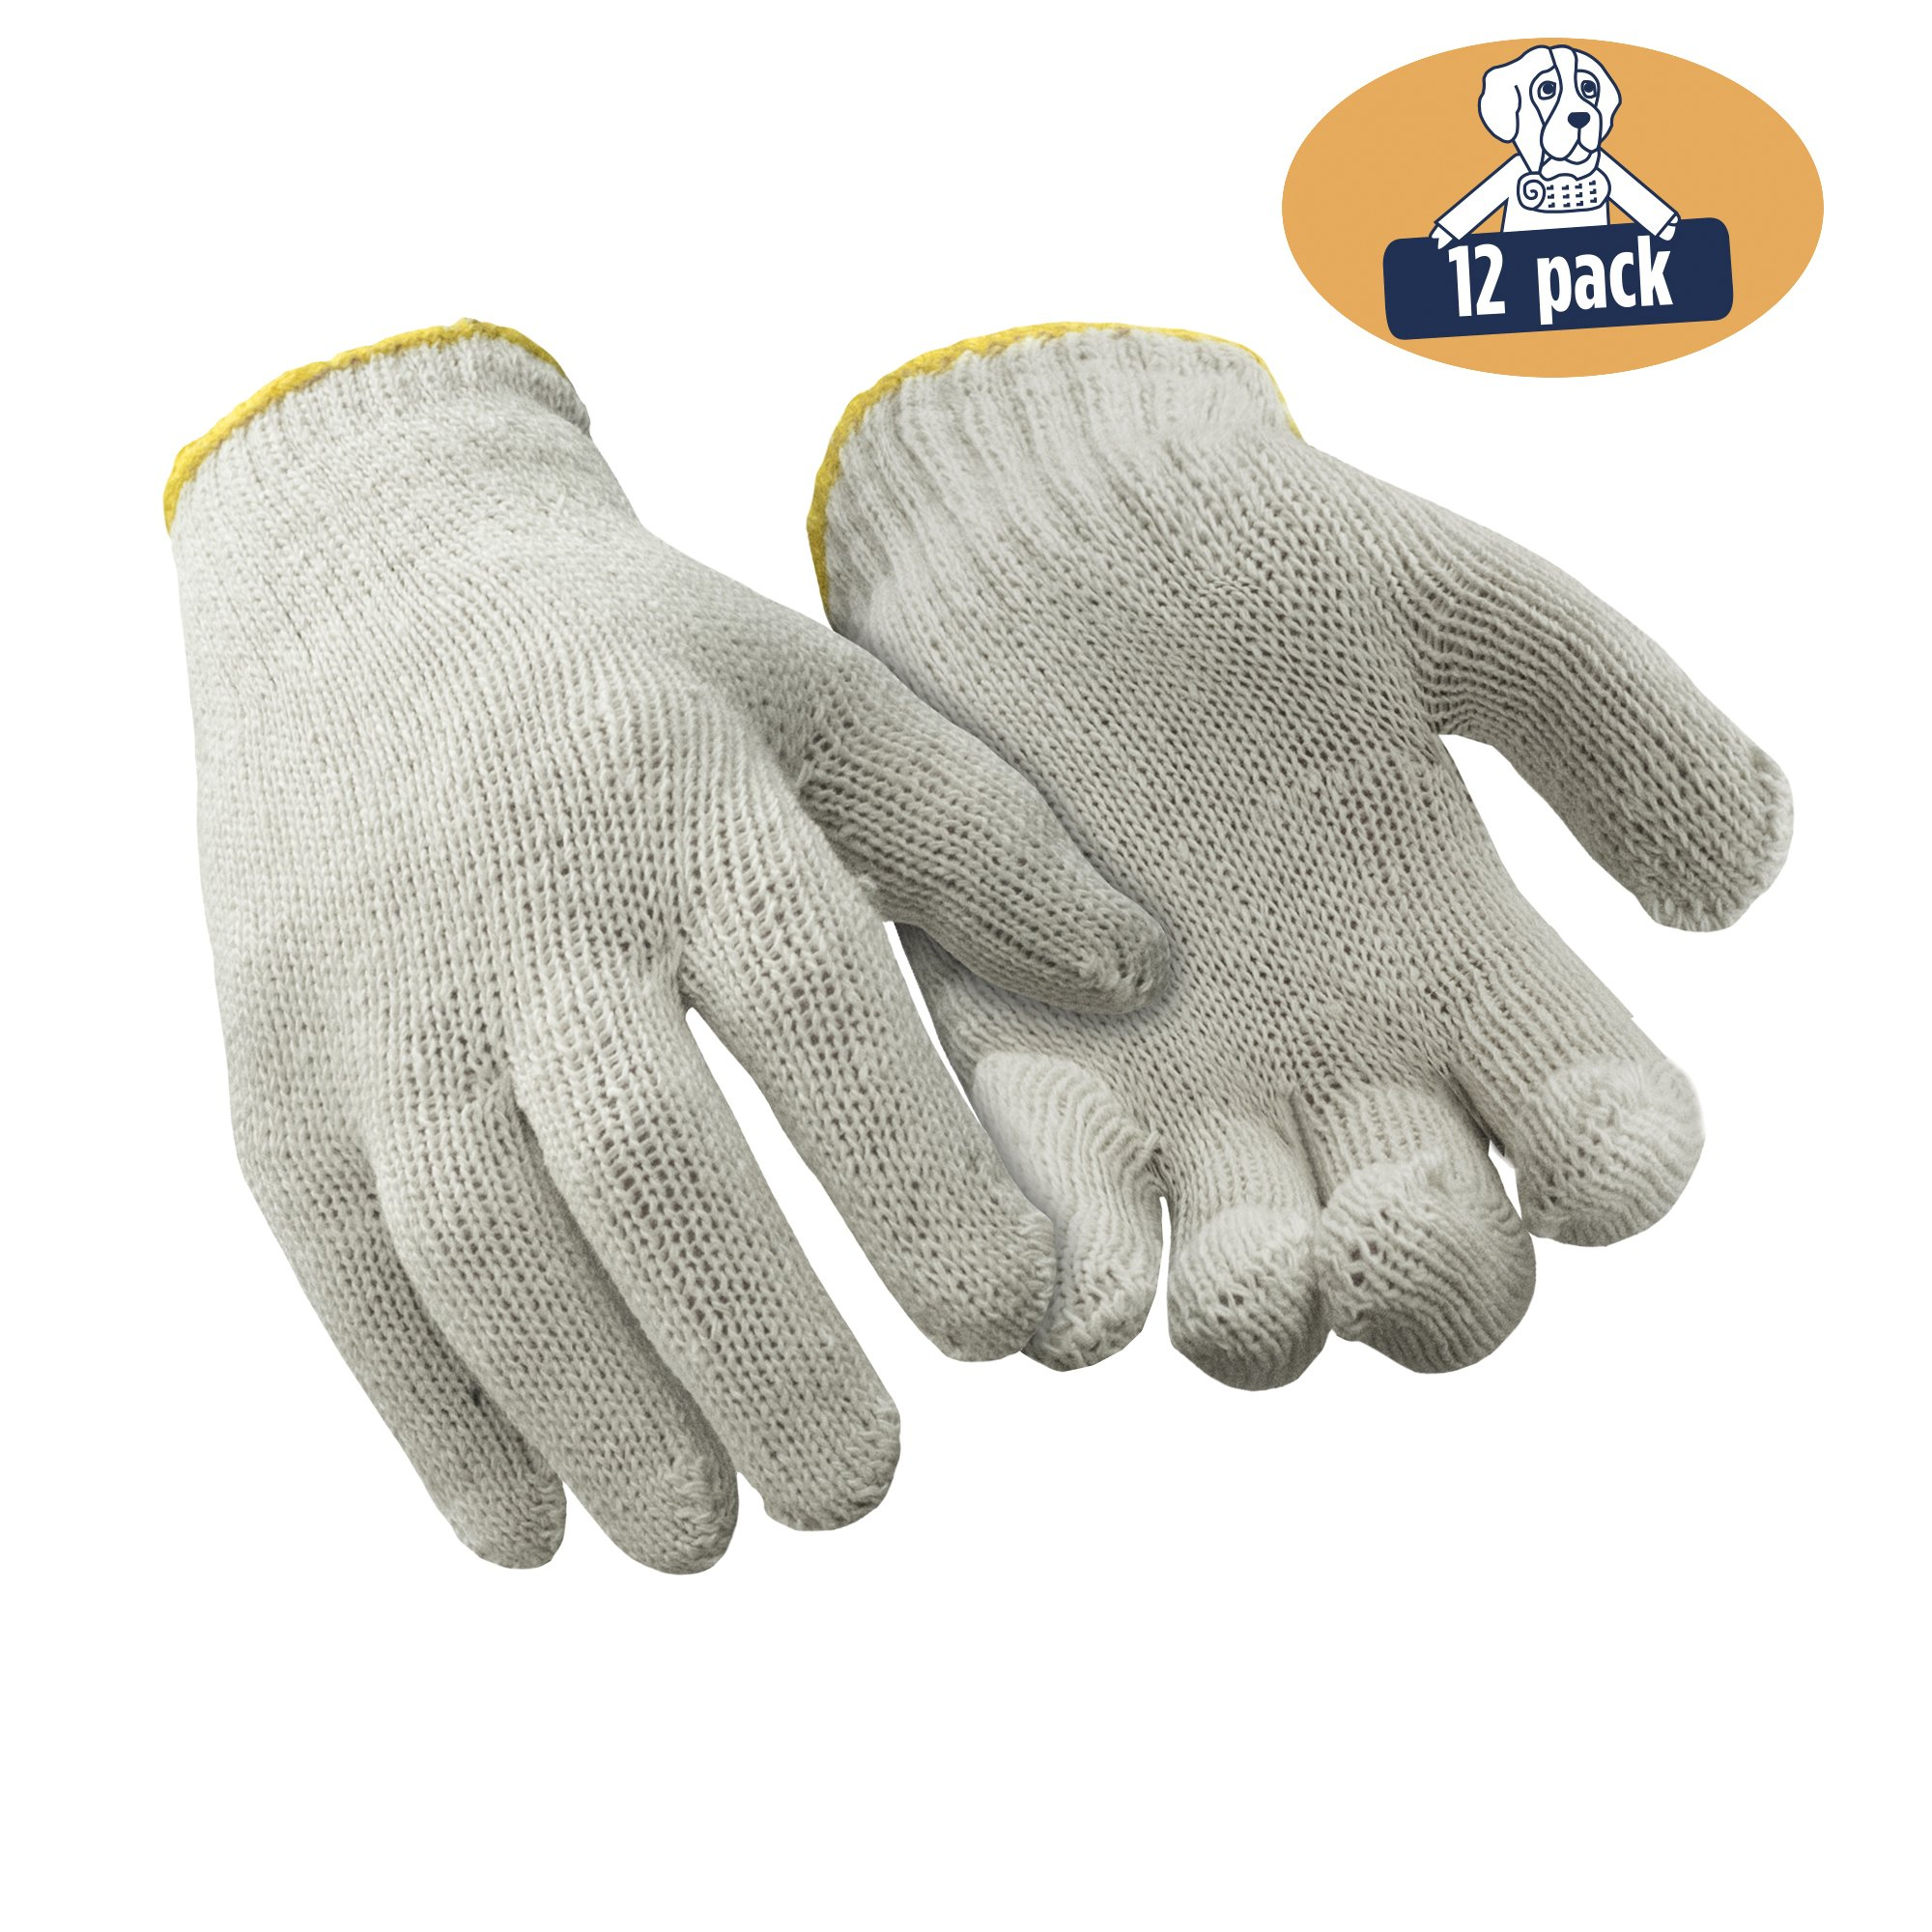 RefrigiWear Lightweight String Knit Glove Liners, Pack of 12 Pairs (Natural, Large)